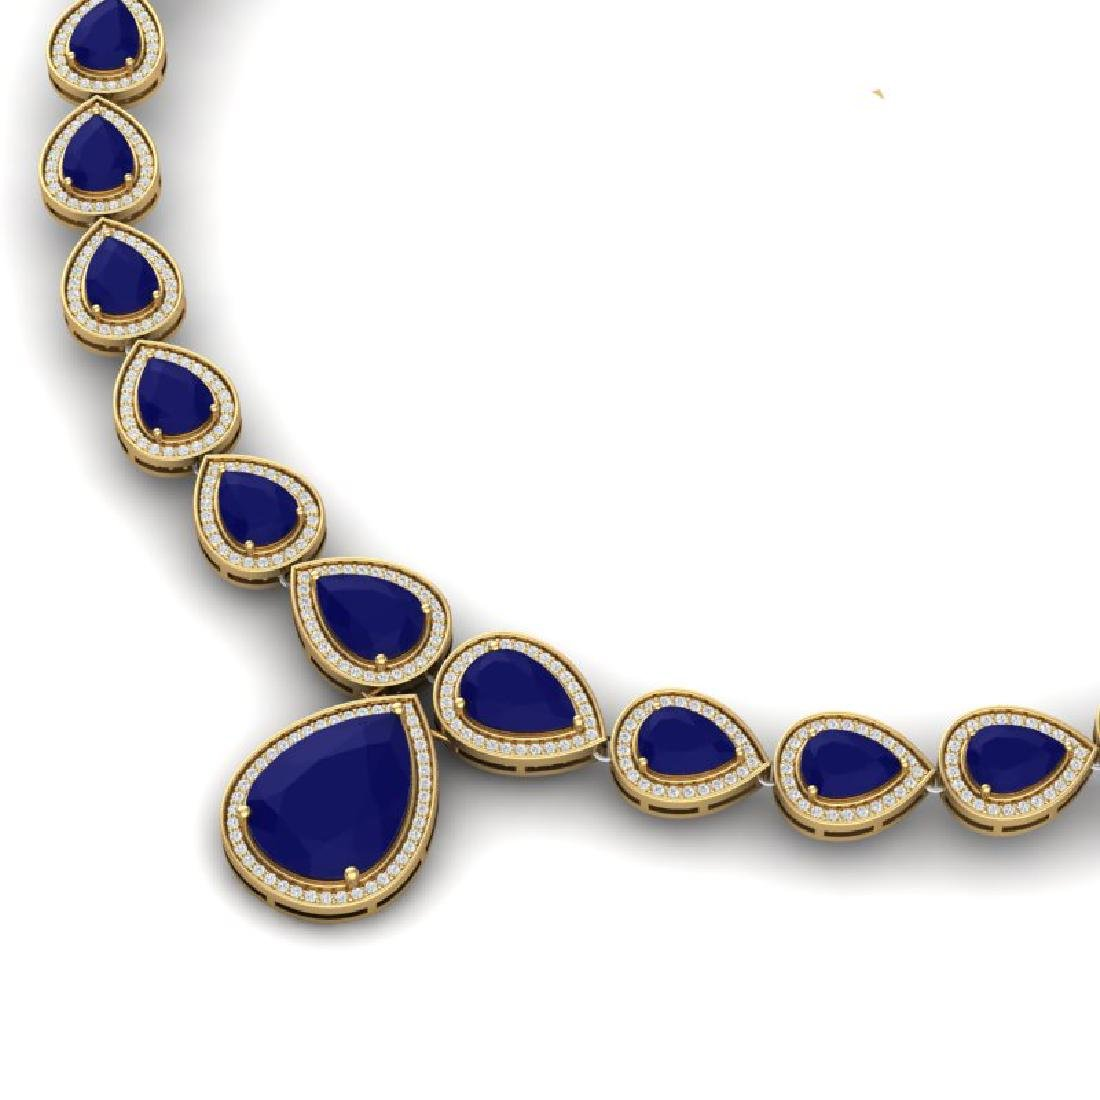 51.41 CTW Royalty Sapphire & VS Diamond Necklace 18K - 2